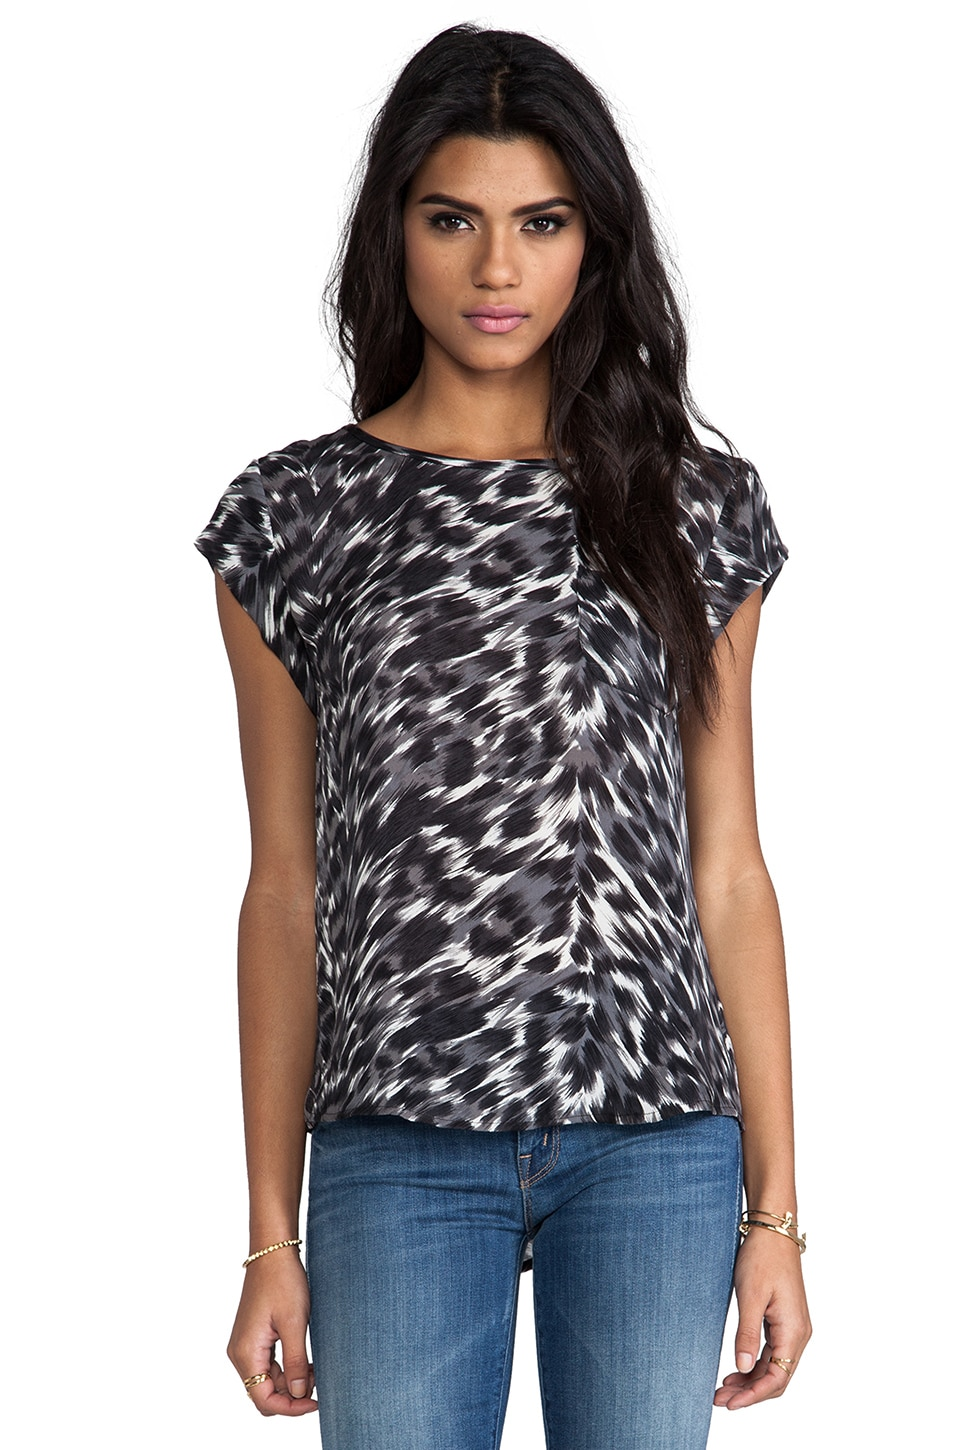 Joie Rancher Animal Print Top in Caviar